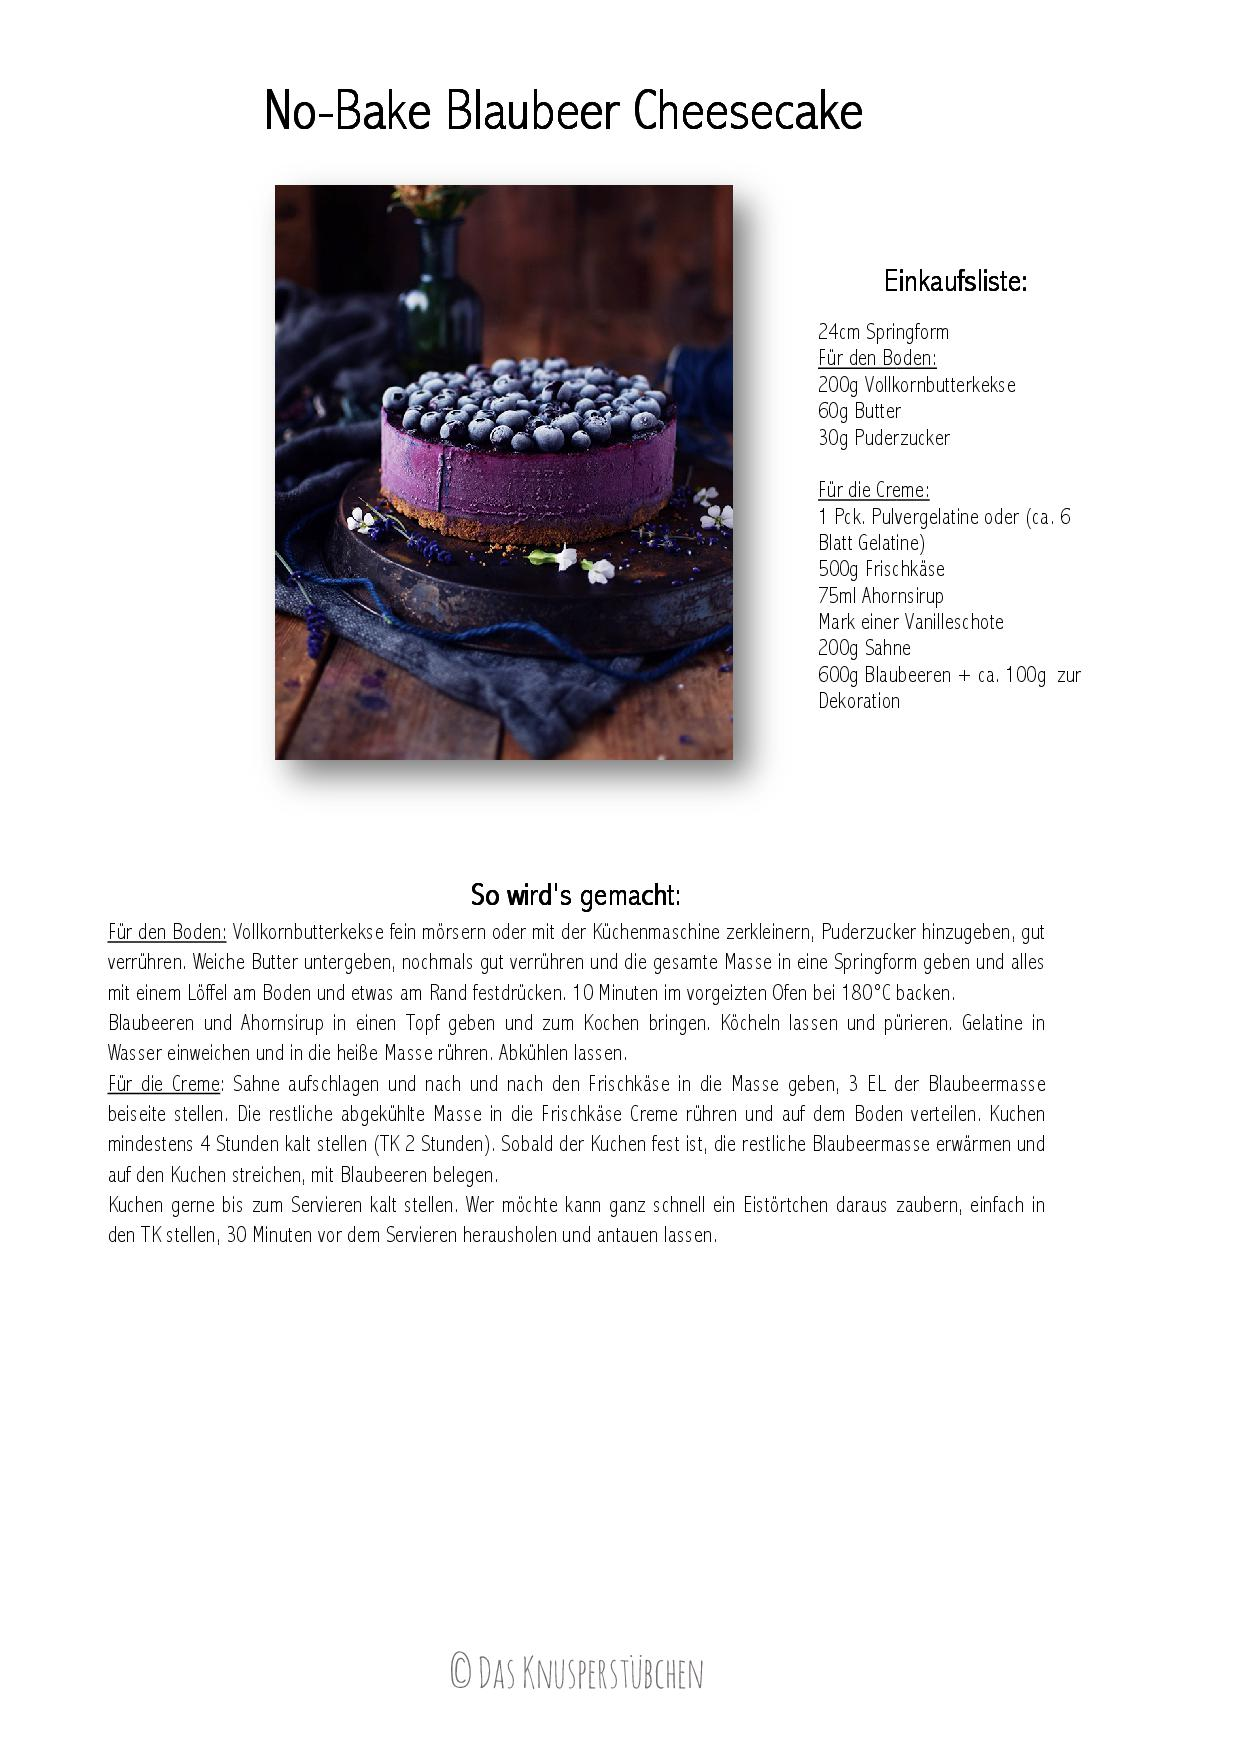 No-Bake Blaubeer Cheesecake Rezept-001